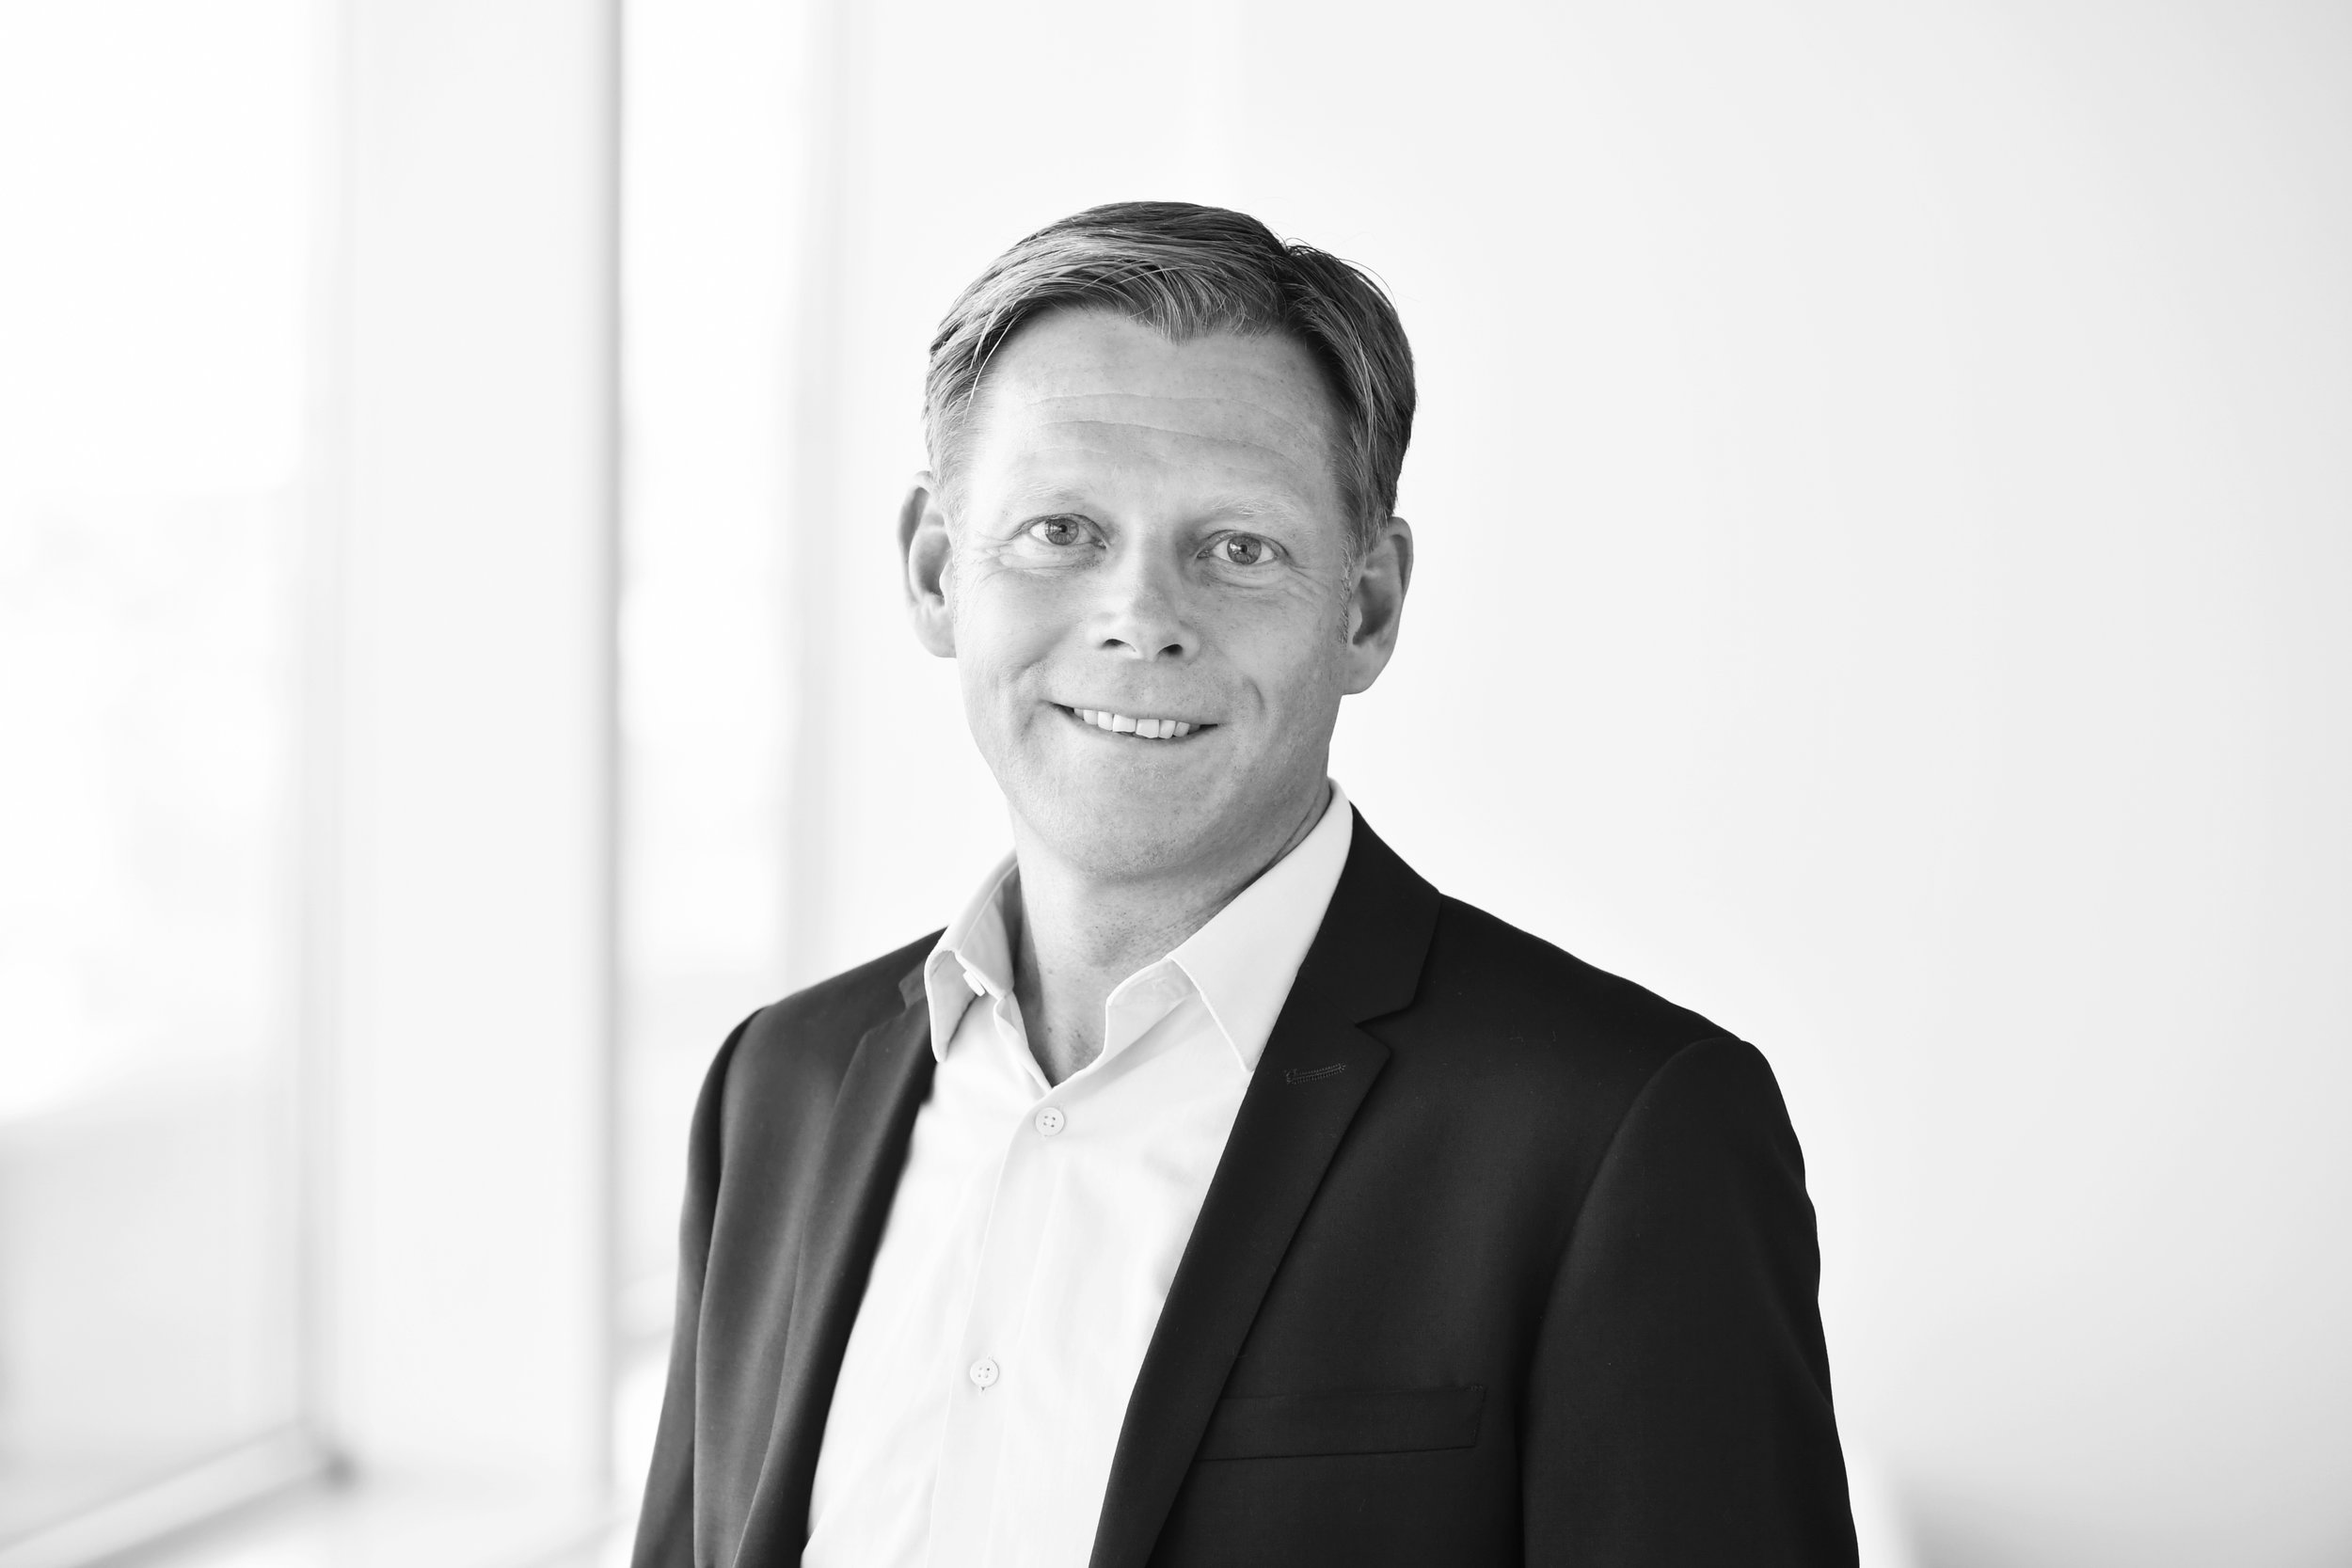 ROGER HENRYSSON - Senior ConsultantExtensive experience in human resources and executive search. Previous roles include Senior Consultant at Agentum, Consultant at Novare, HR Manager at Valtec, and Korn Ferry. Read more →+46 (0)73 531 72 16 roger.henrysson@nordicinterim.com